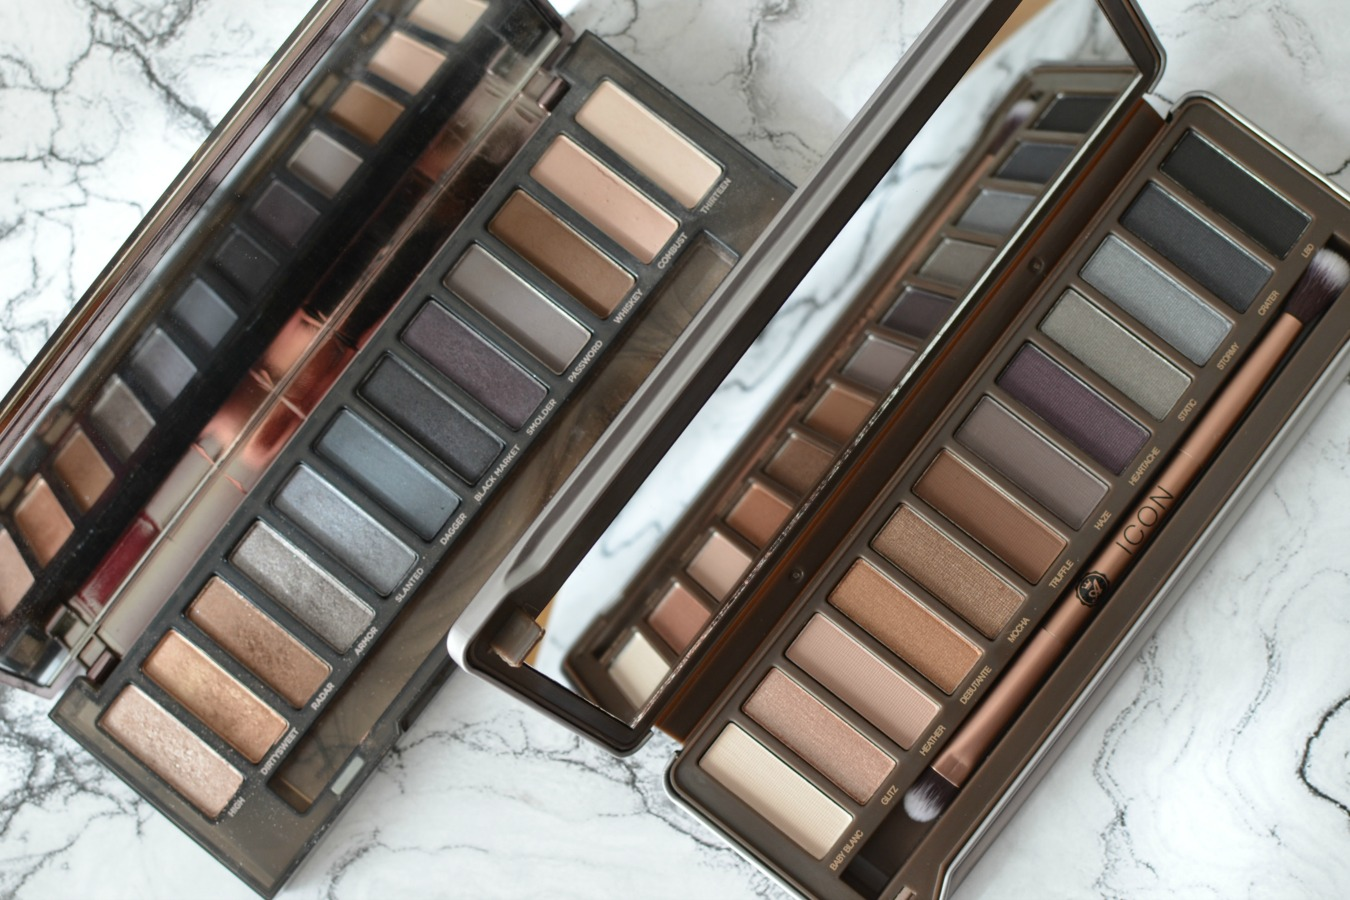 Swatches ICON de Absolute New York clon de Naked Smoky de Urban Decay